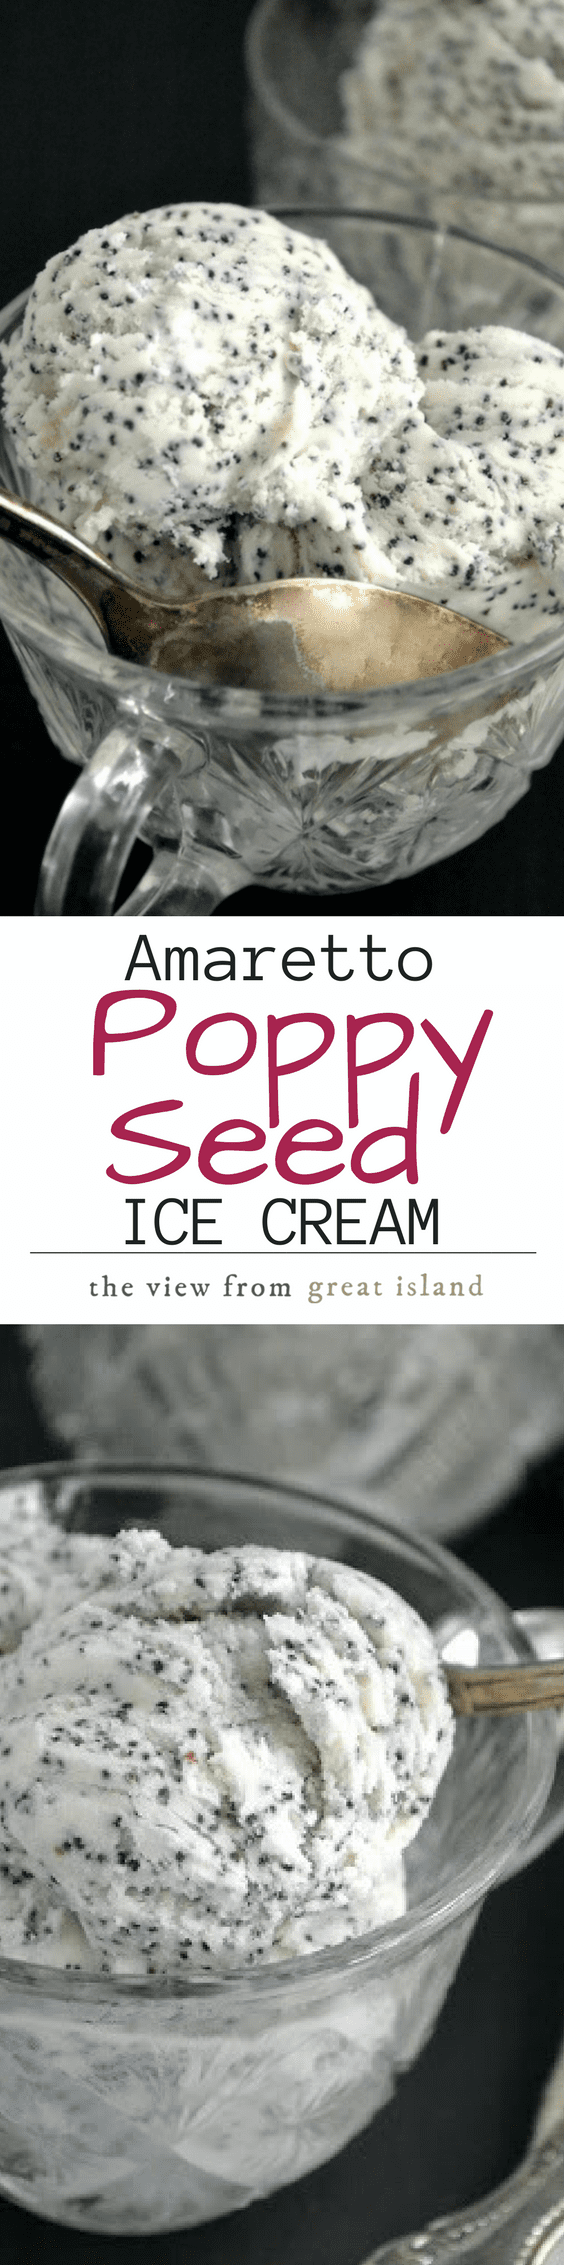 This unusual Amaretto Poppy Seed ice Cream is just delightful, with a complex almond flavor and a bright crunch from the poppy seeds, it's an unexpected treat! |dessert | summer | homemade ice cream | cocktails | Liqueur |